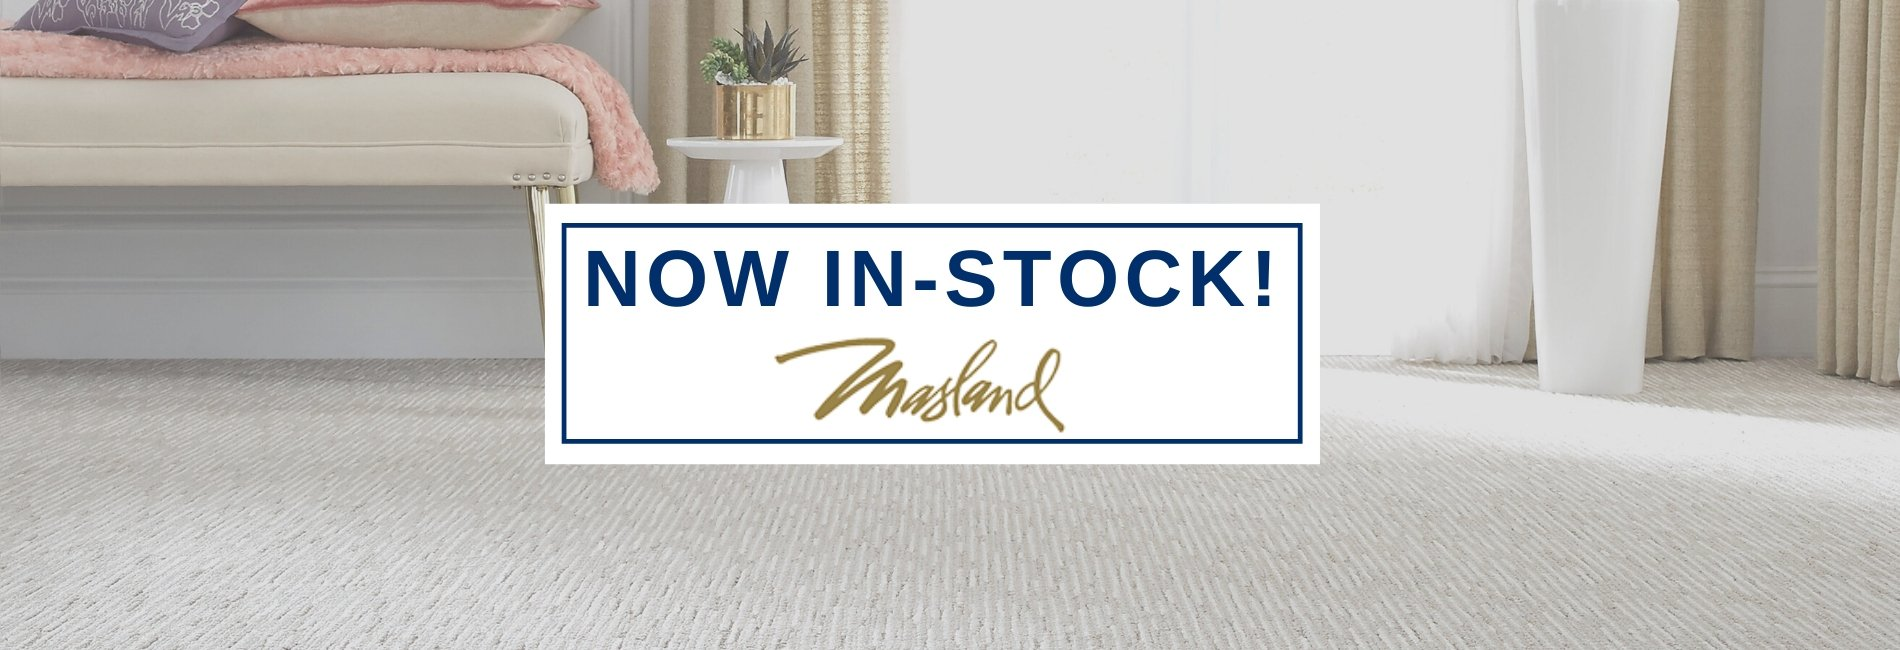 Now In-Stock Masland Carpets